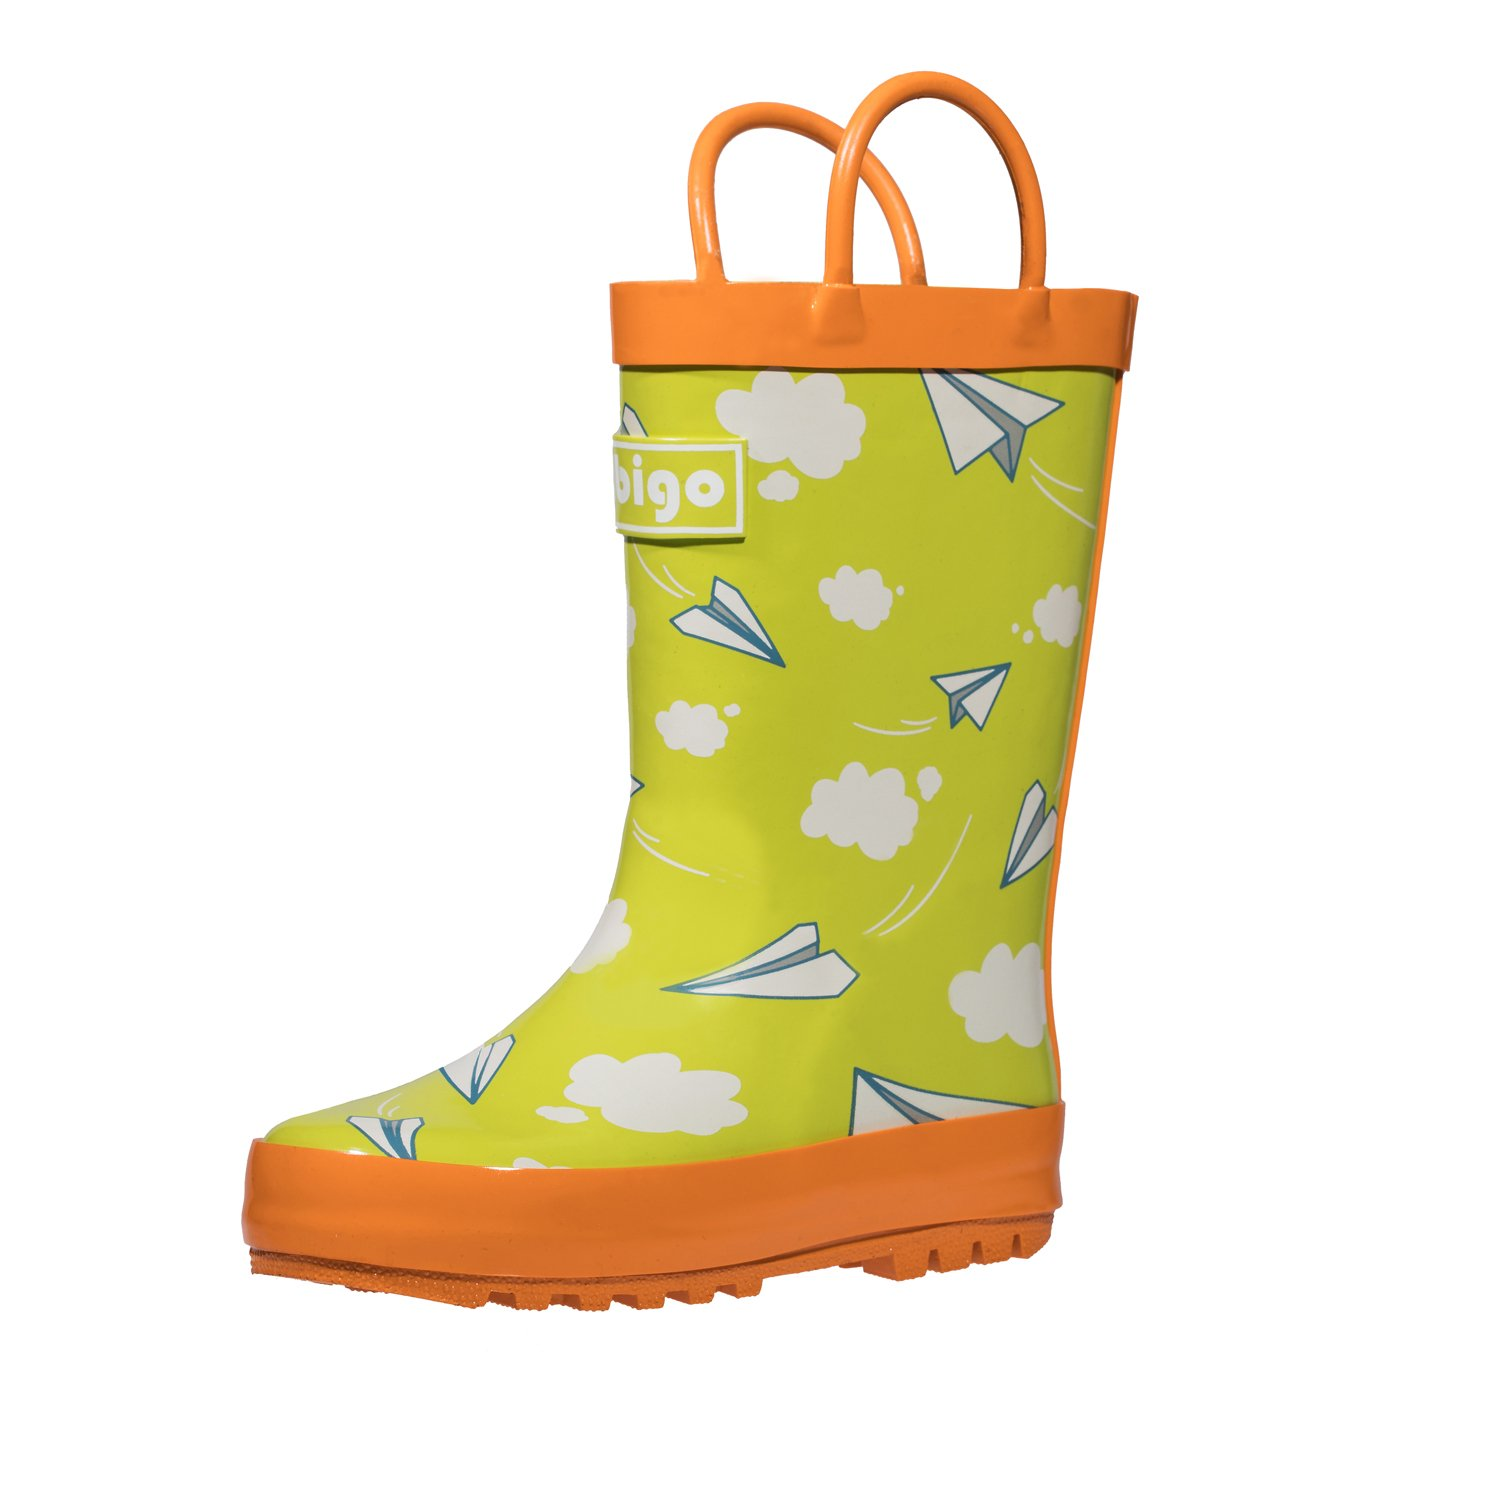 hibigo Children's Natural Rubber Rain Boots with Handles Easy for Little Kids & Toddler Girls, Paper Plane